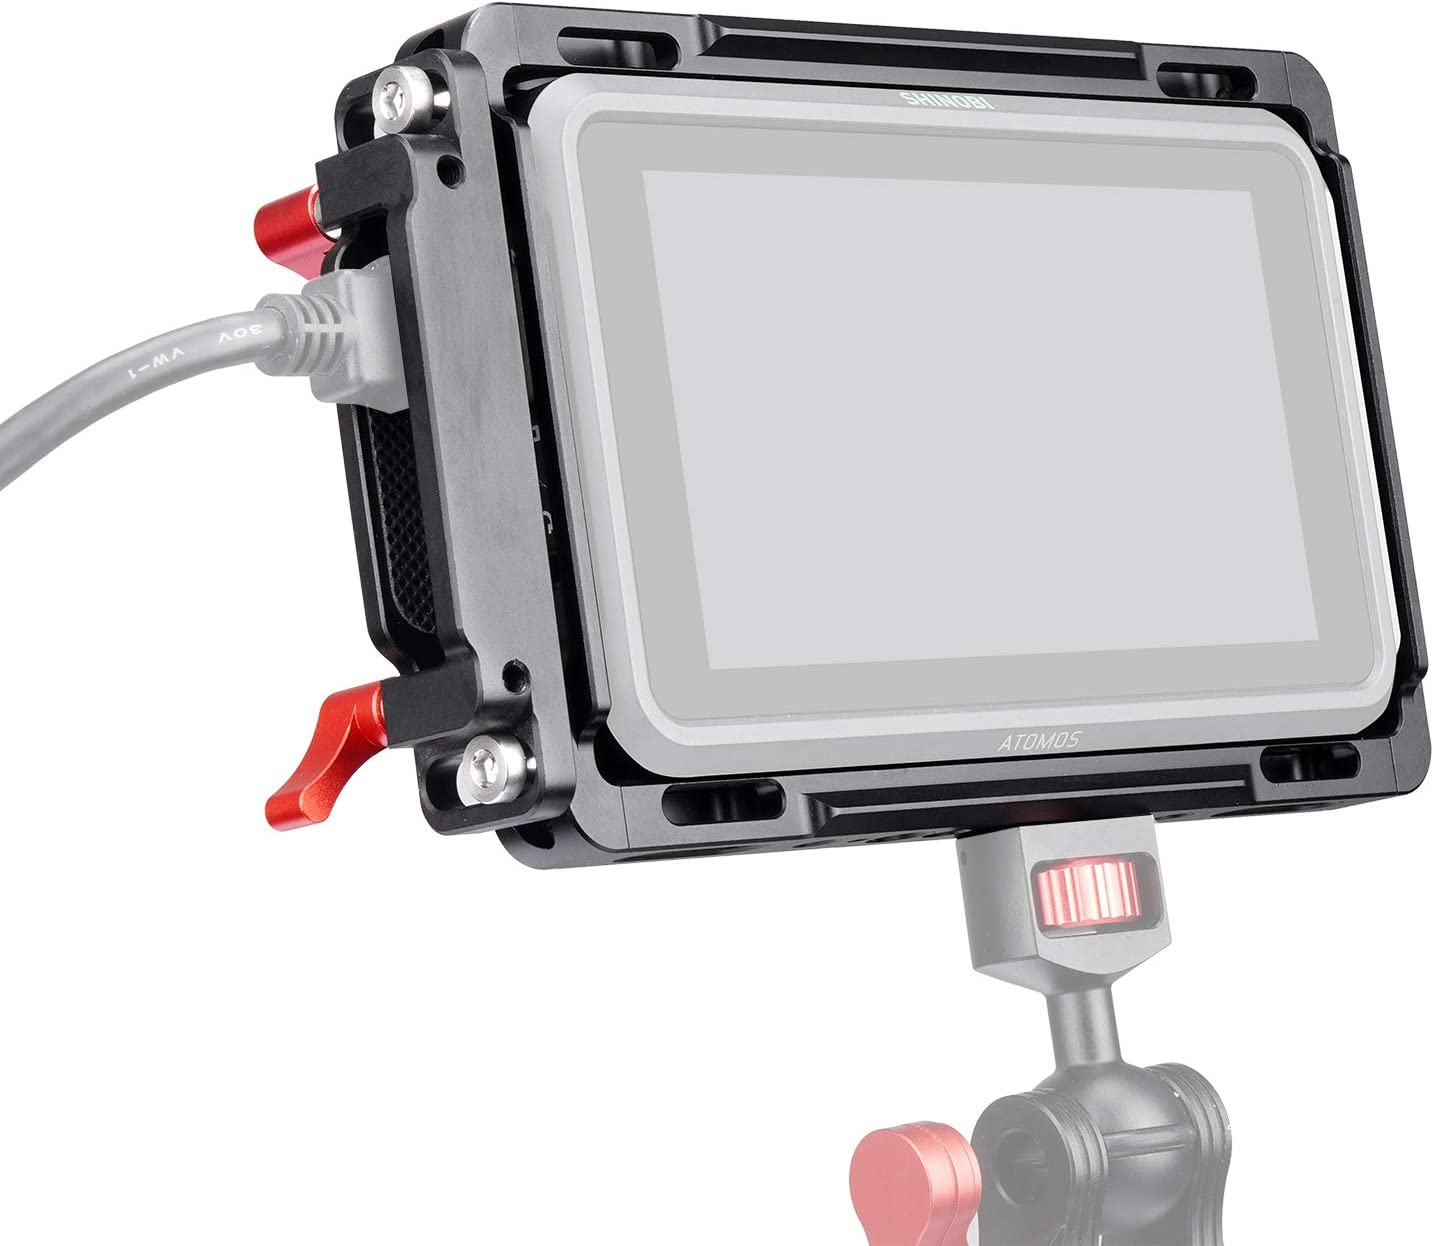 ANDYCINE Monitor Cage with Sunhood for Atomos Nijna V,Atomos Shinobi,Built-in NATO Rails and HDMI Cable Clamp